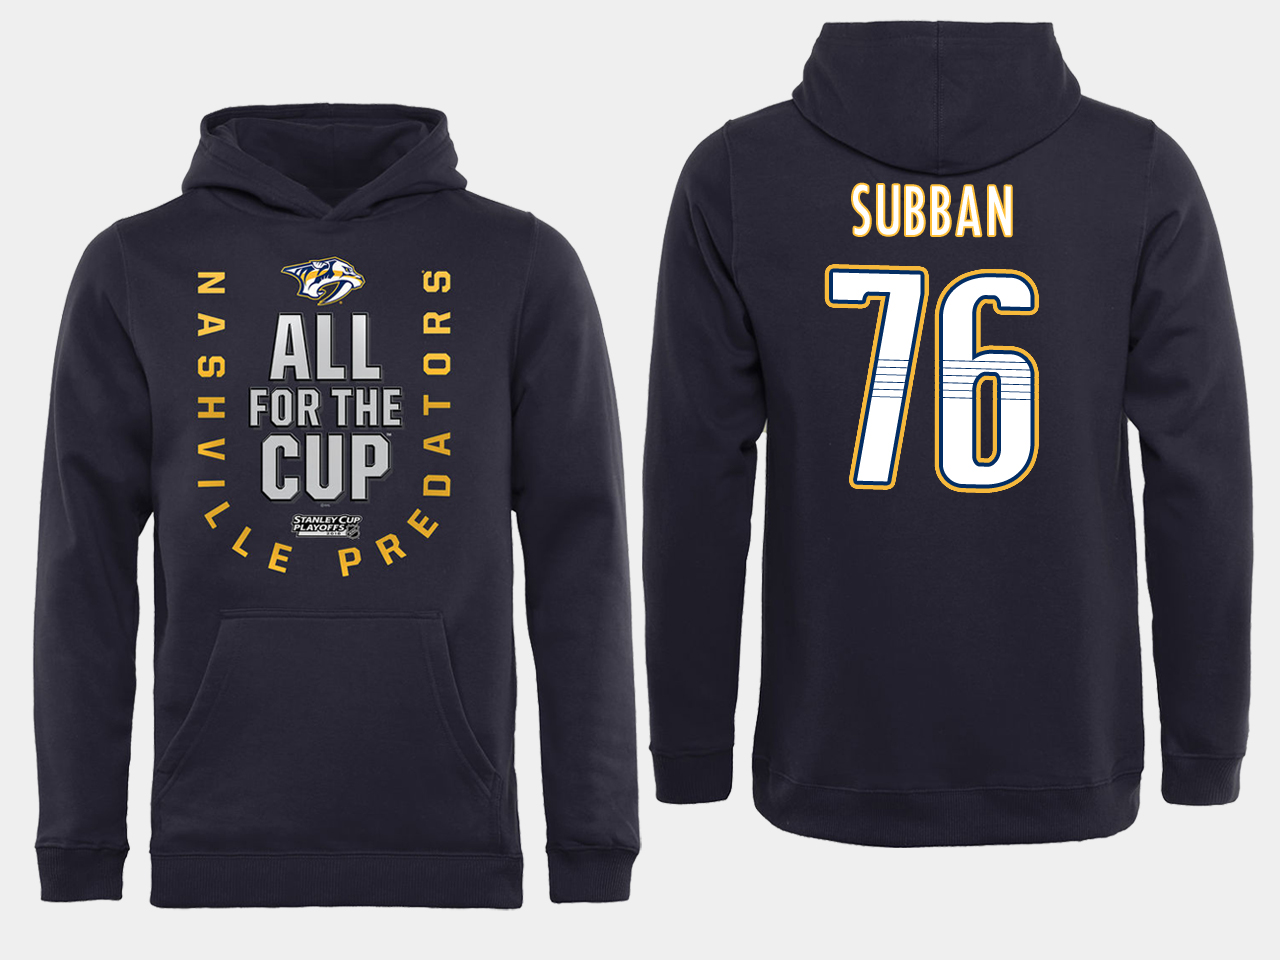 Men NHL Adidas Nashville Predators 76 Subban black ALL for the Cup hoodie